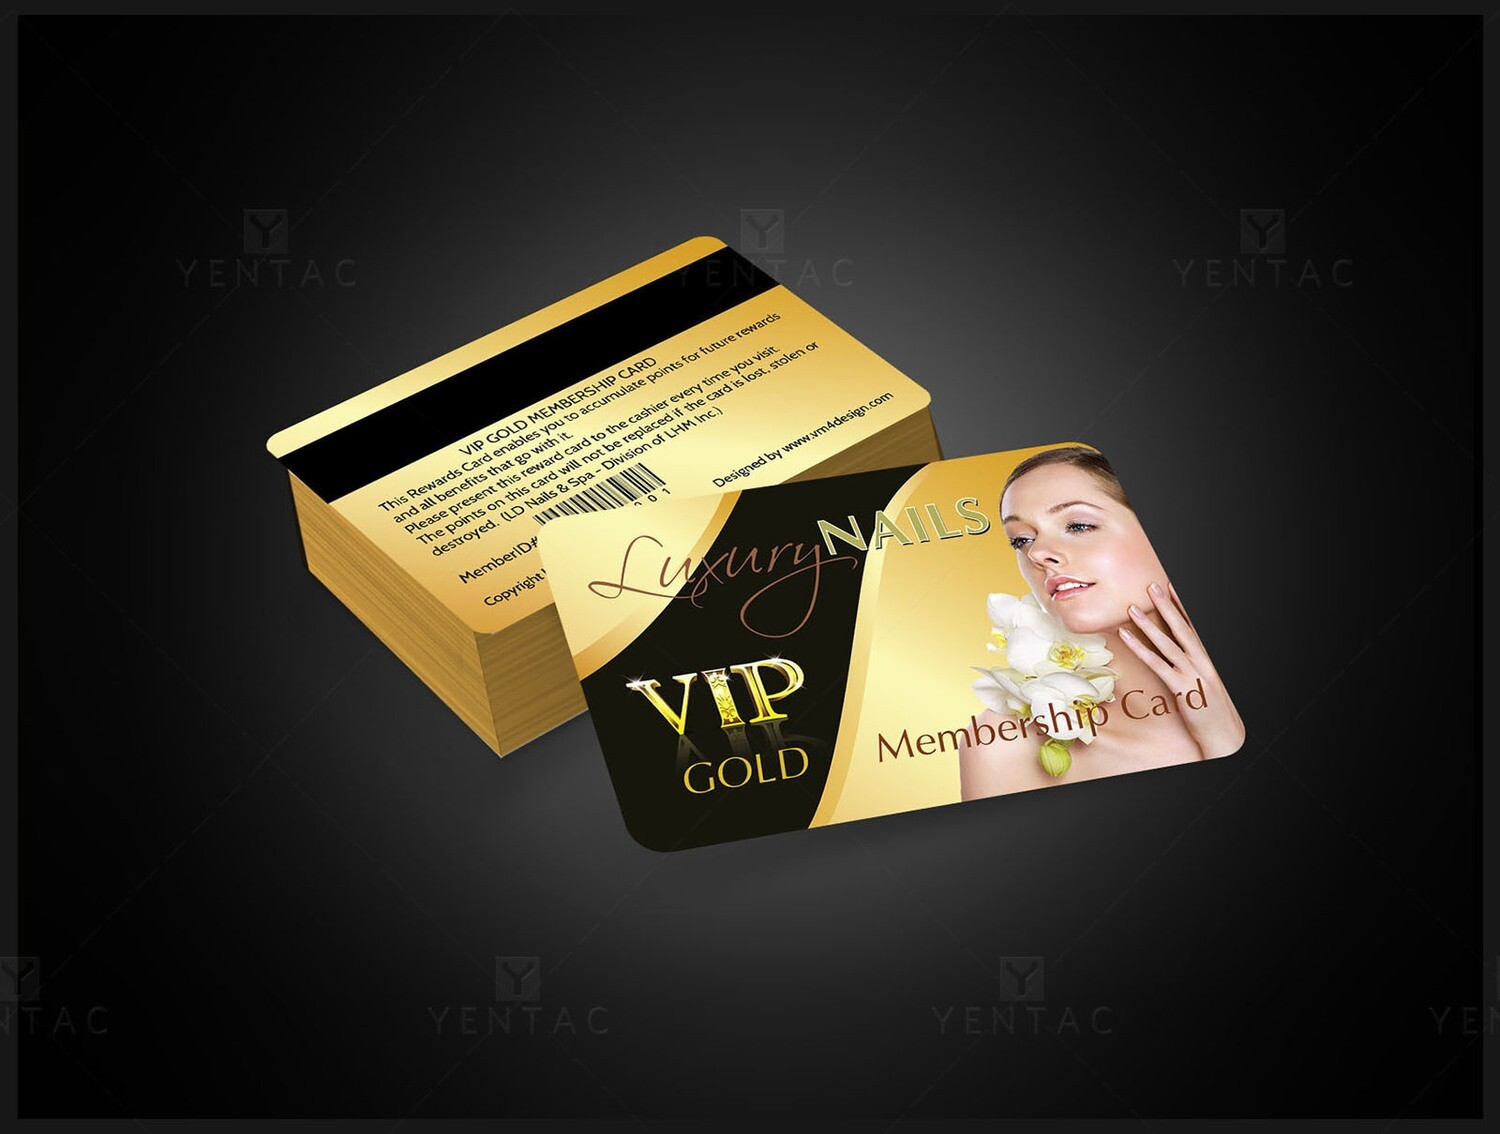 06 - Plastic VIP Card - Luxury Nails Spa #0991 Salon